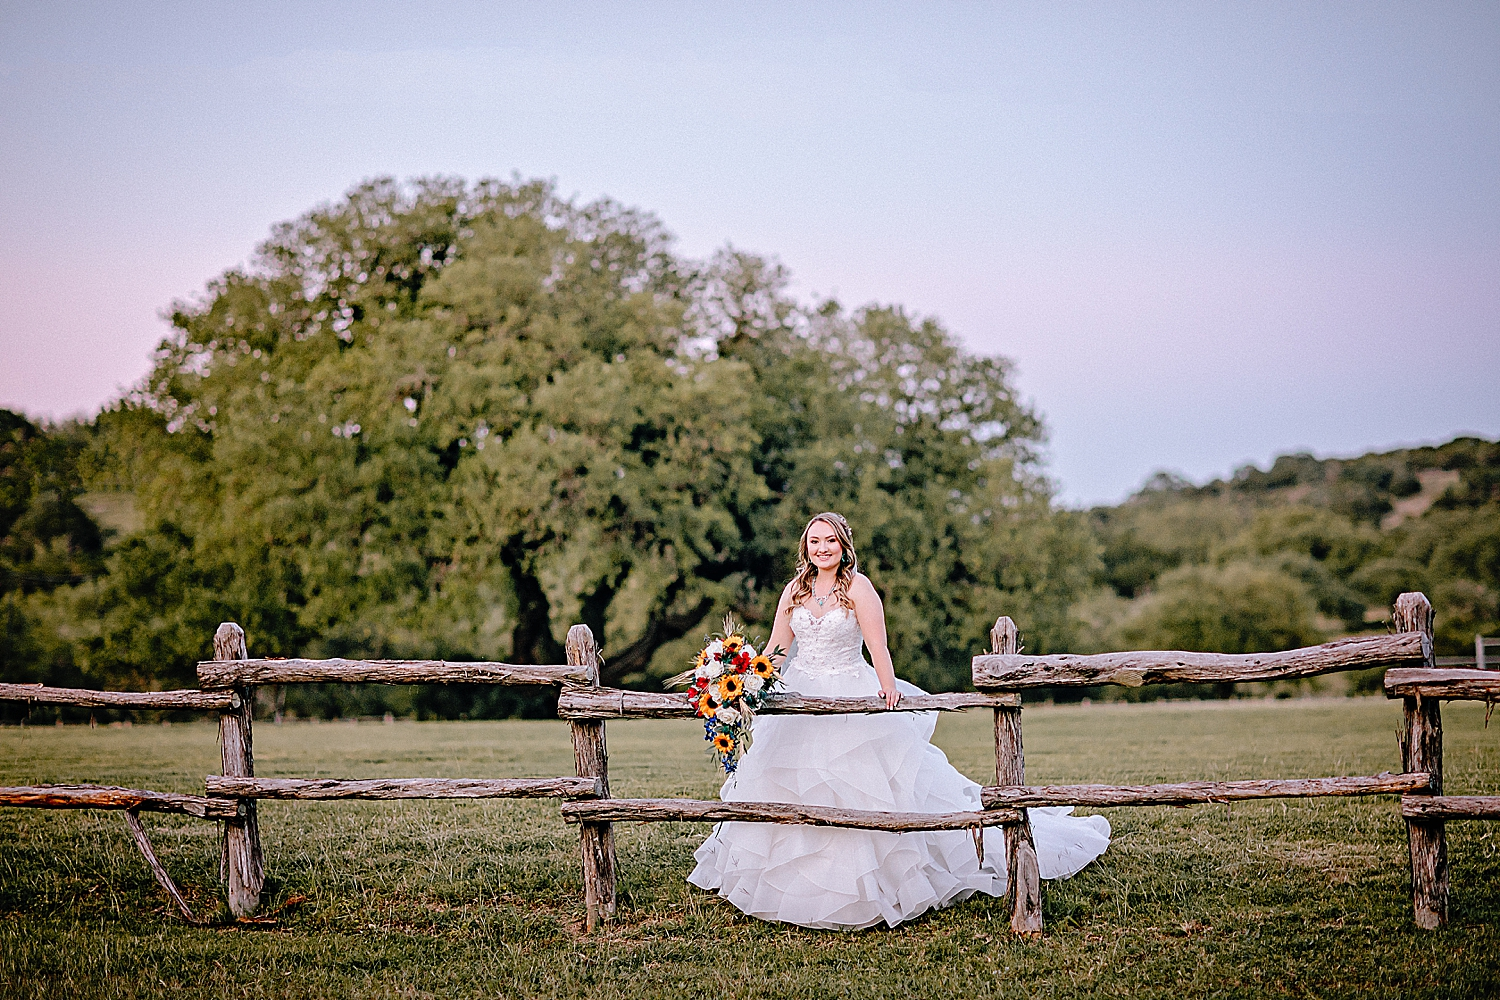 Carly-Barton-Photography-Texas-Bridals-Boerne-Rustic-Wedding-Photos_0010.jpg